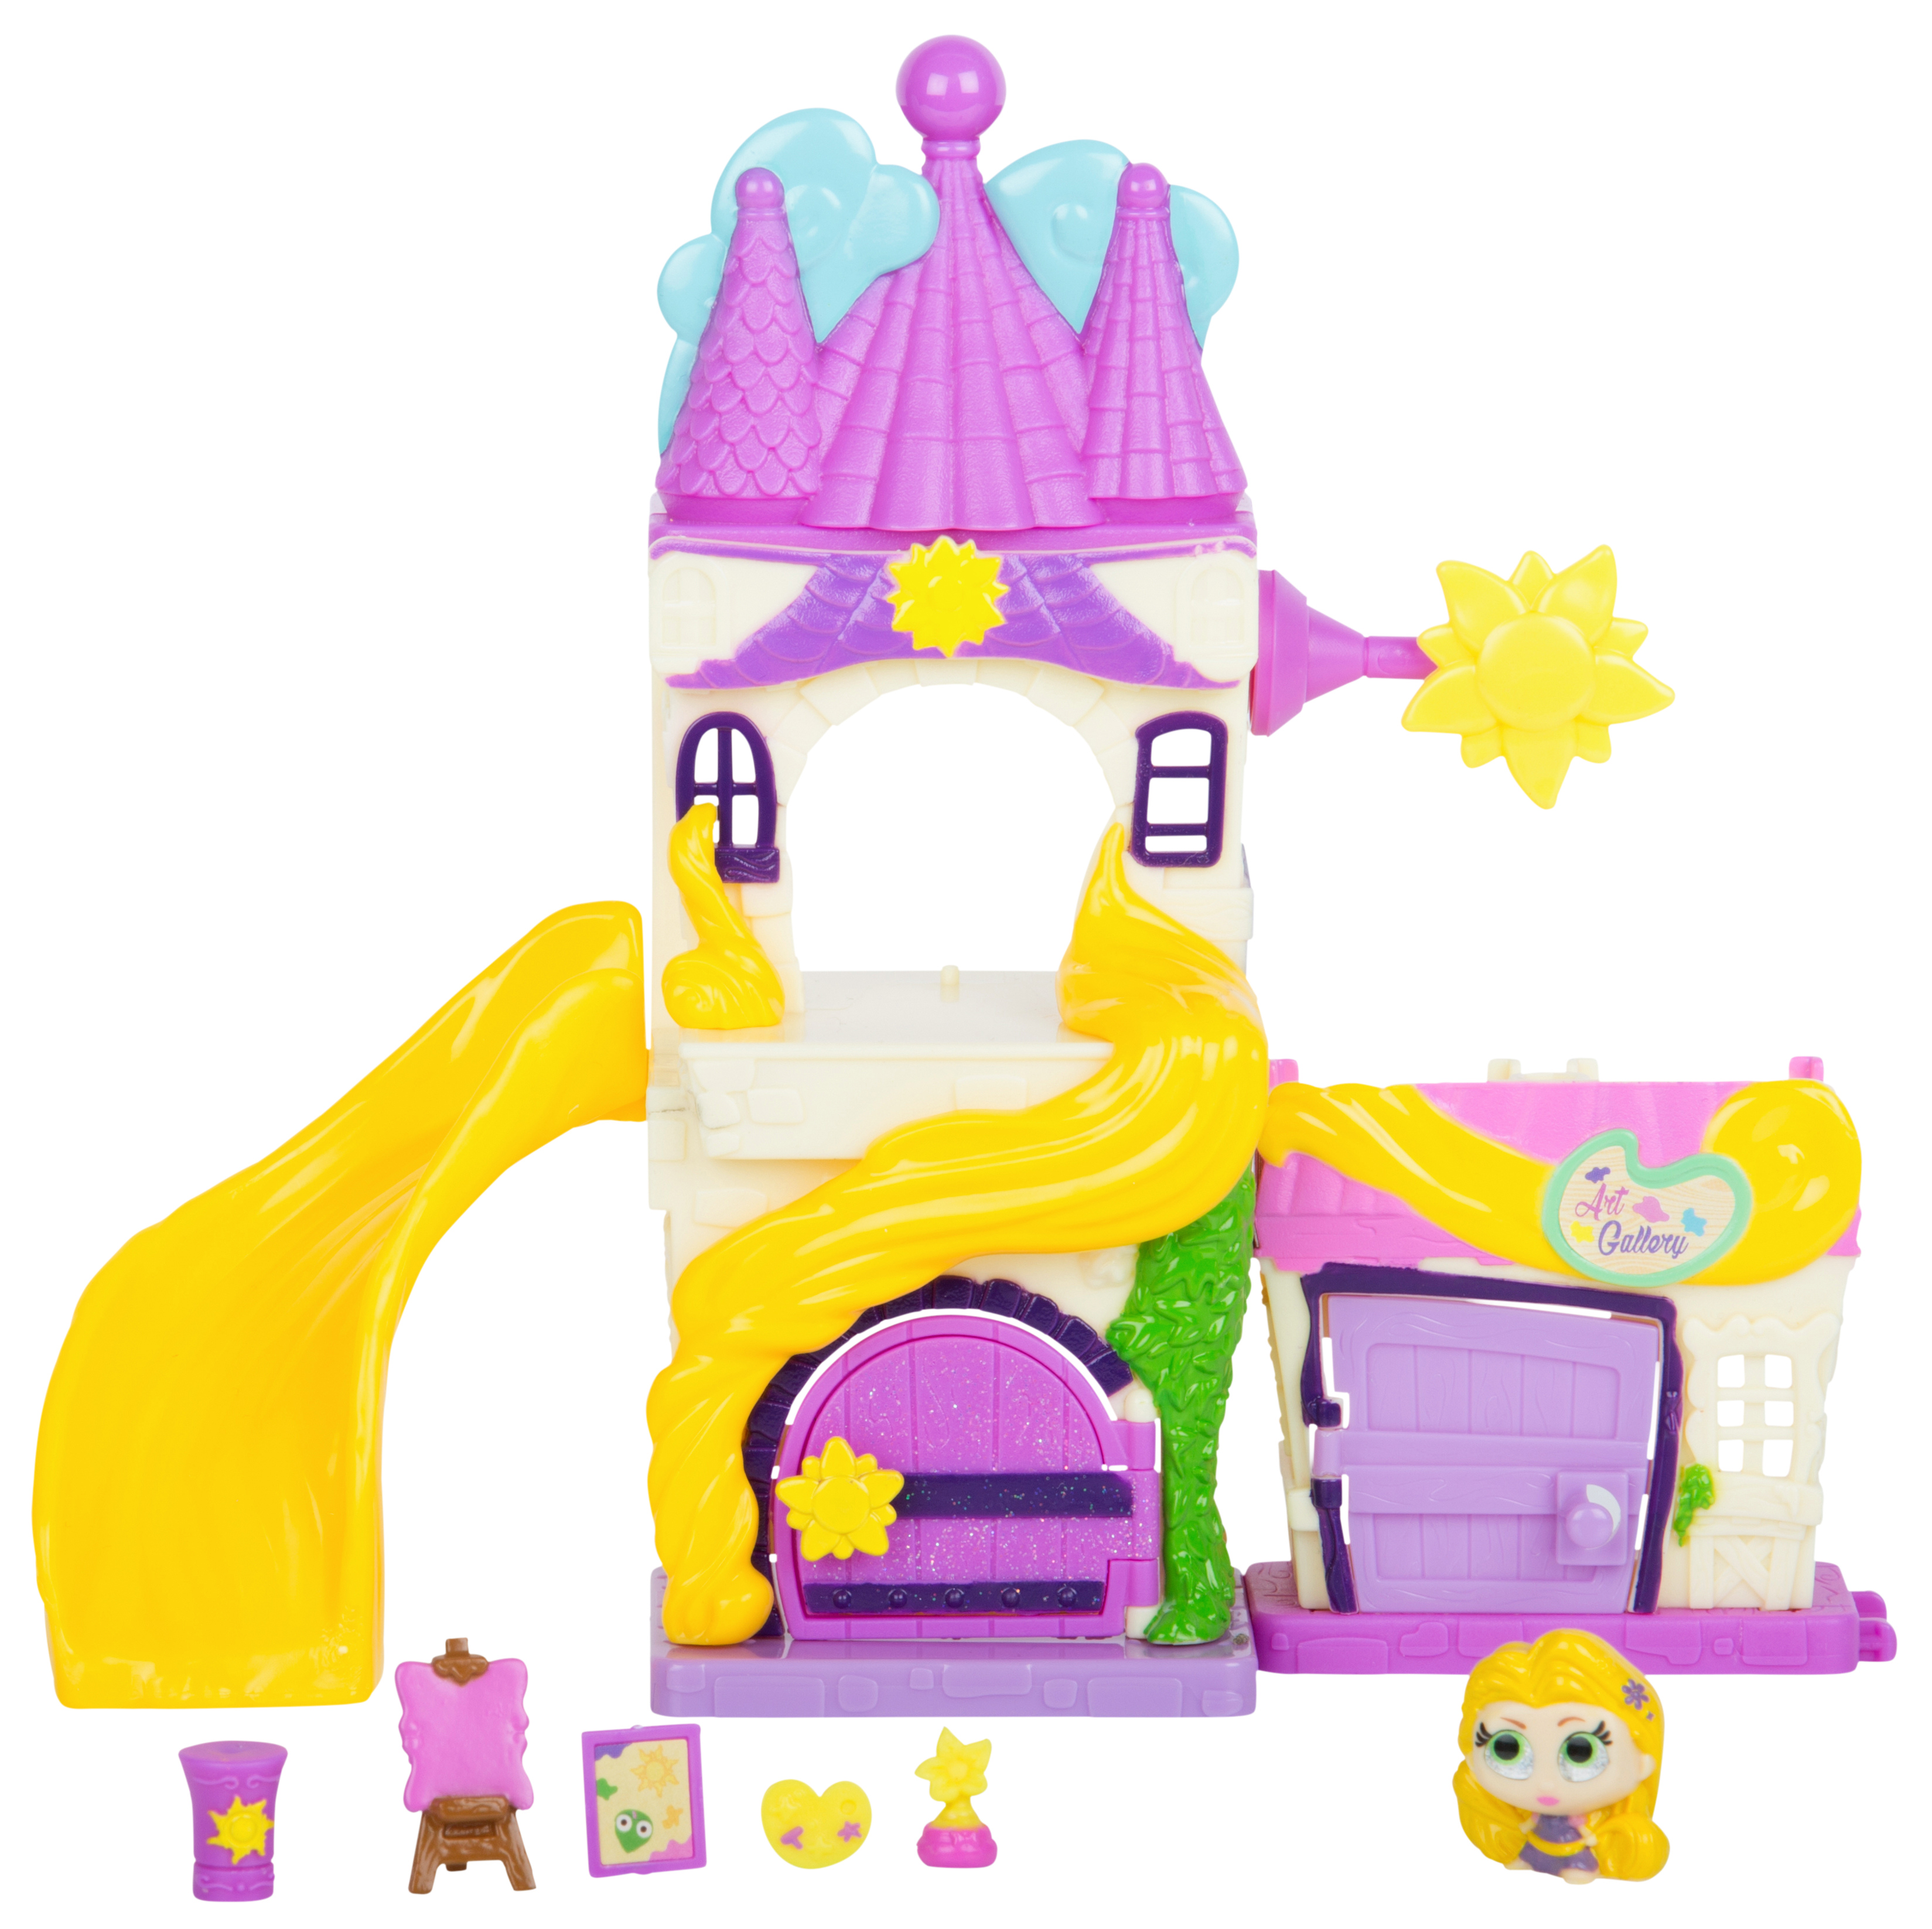 Disney Doorables Mini Collectible Figures Multi Stack Playset, Tangled